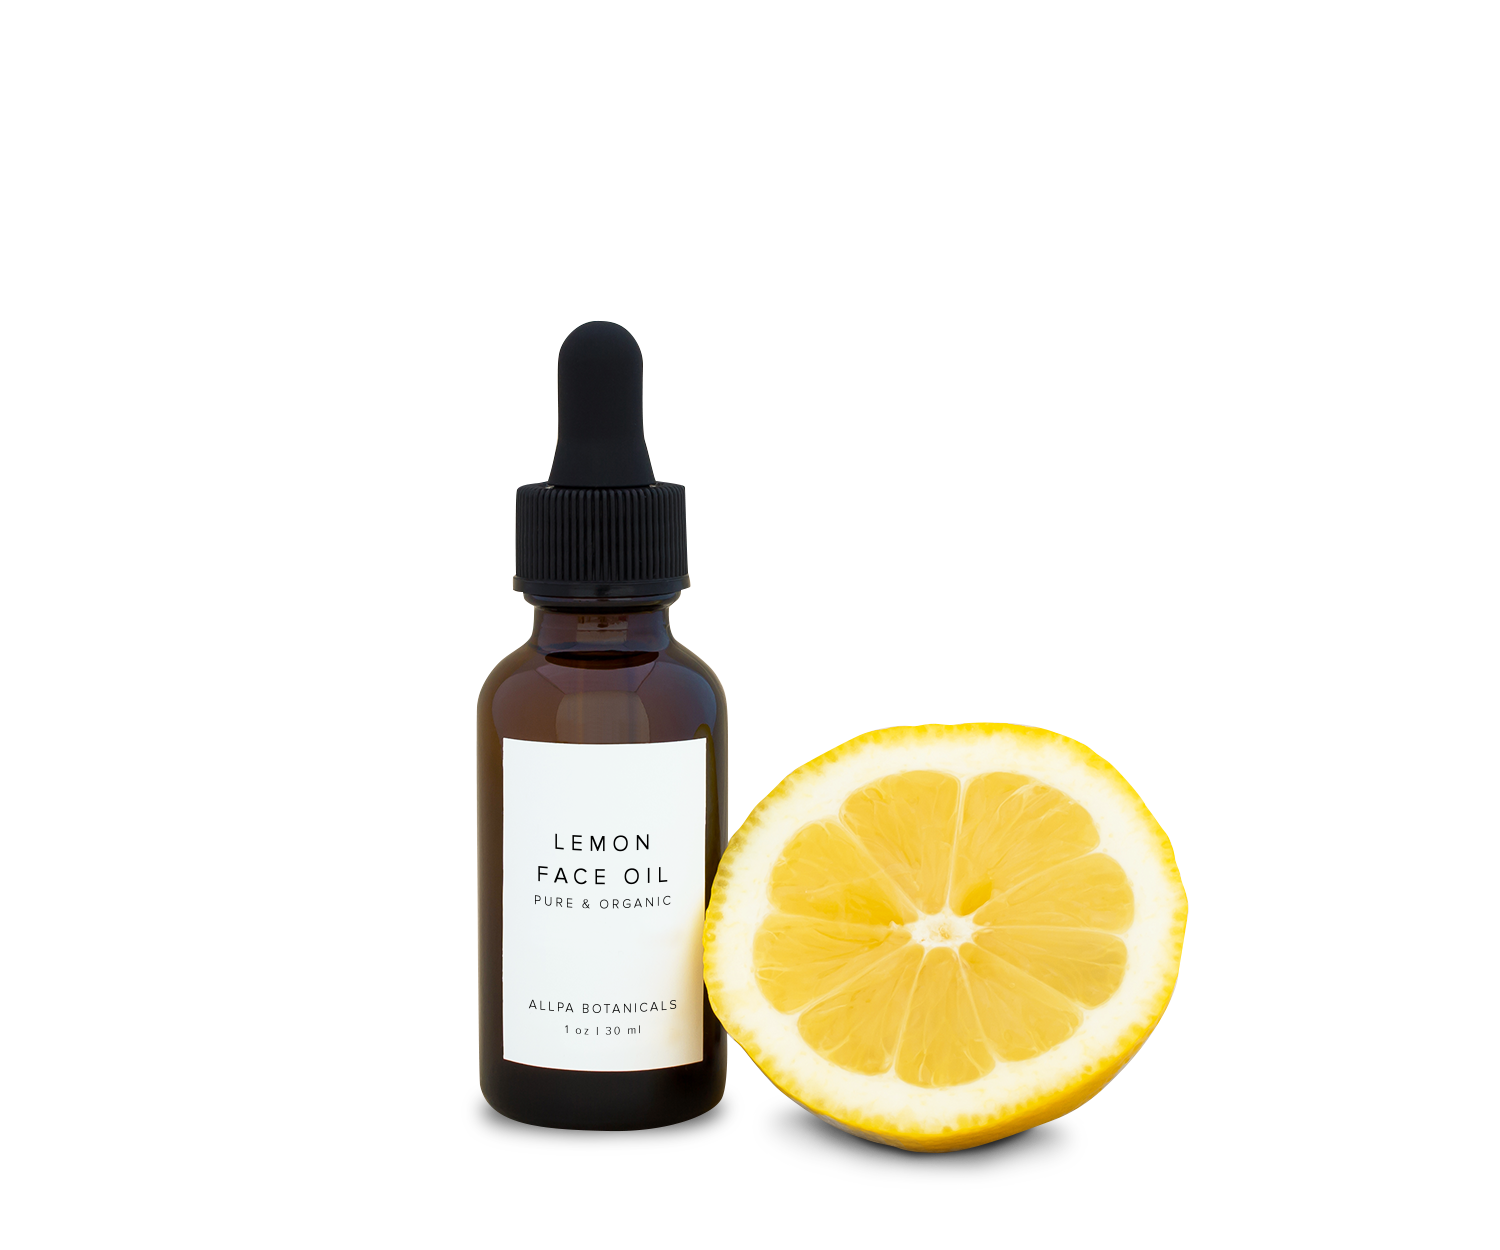 Lemon Face Oil